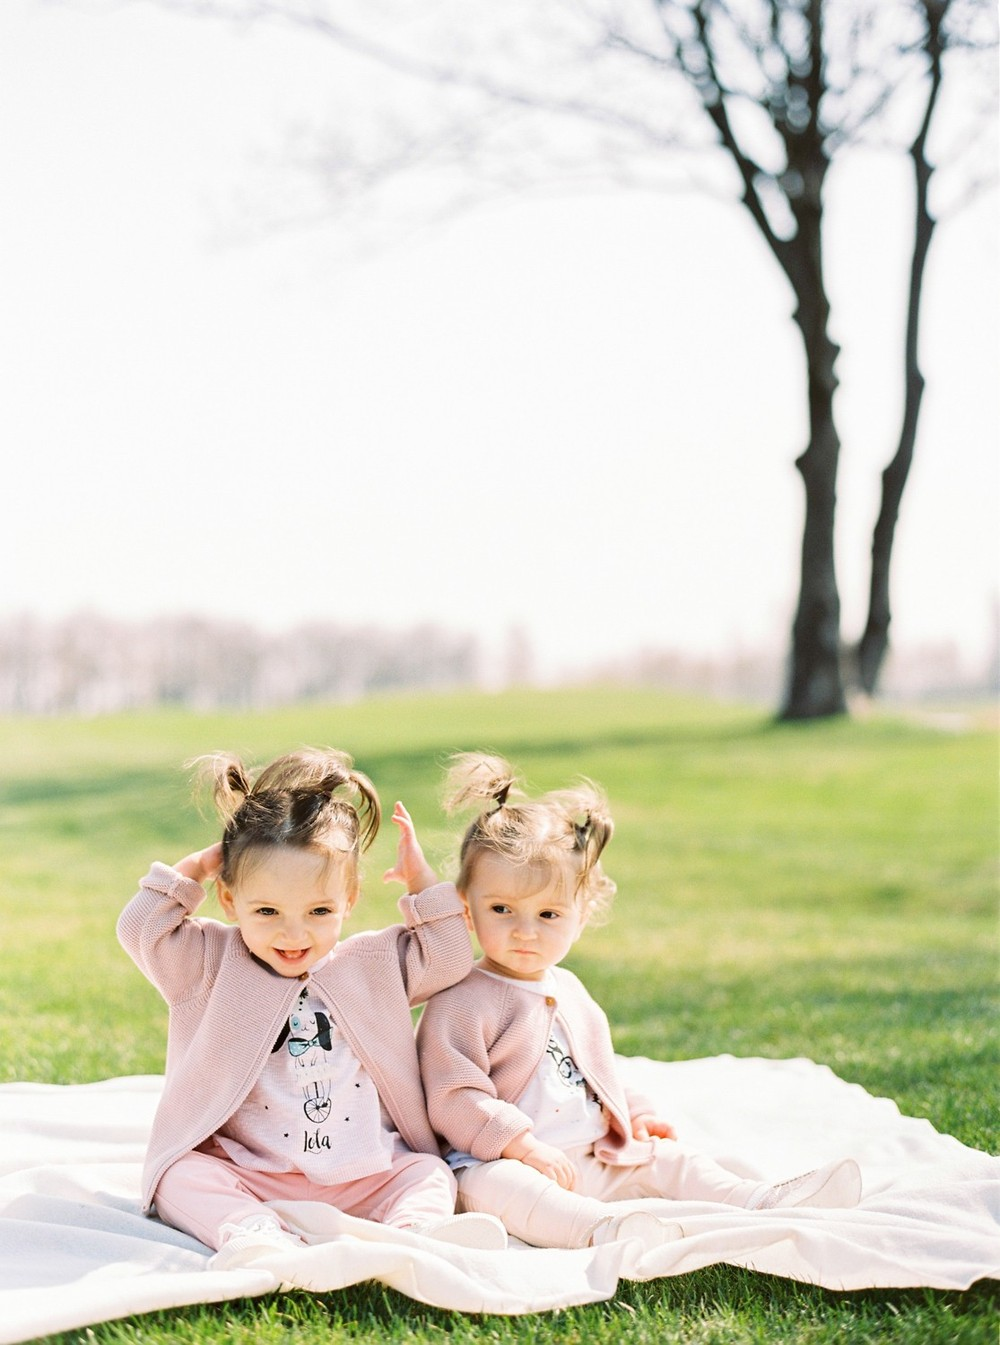 Twins happiness